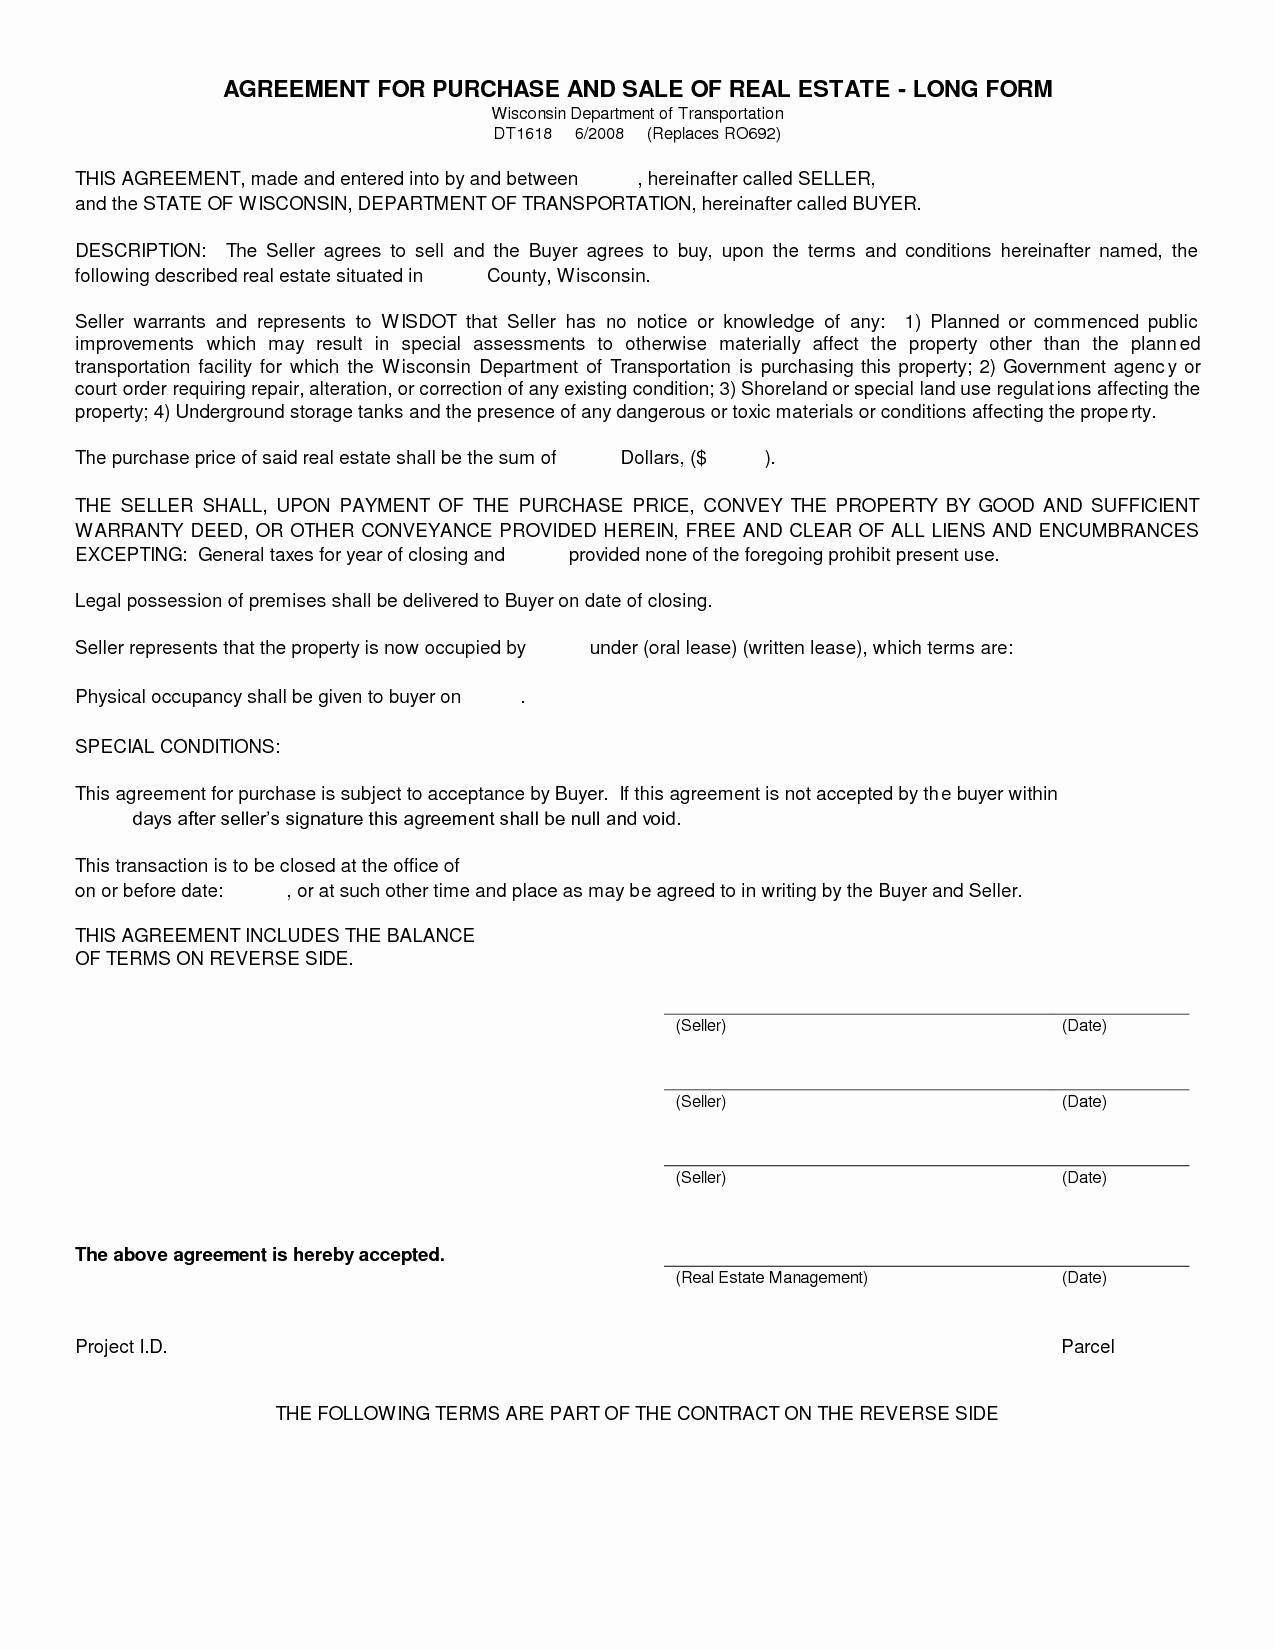 Co-ownership Agreement Real Estate Template Lovely Free Blank Purchase Agreement form Images Agreement to